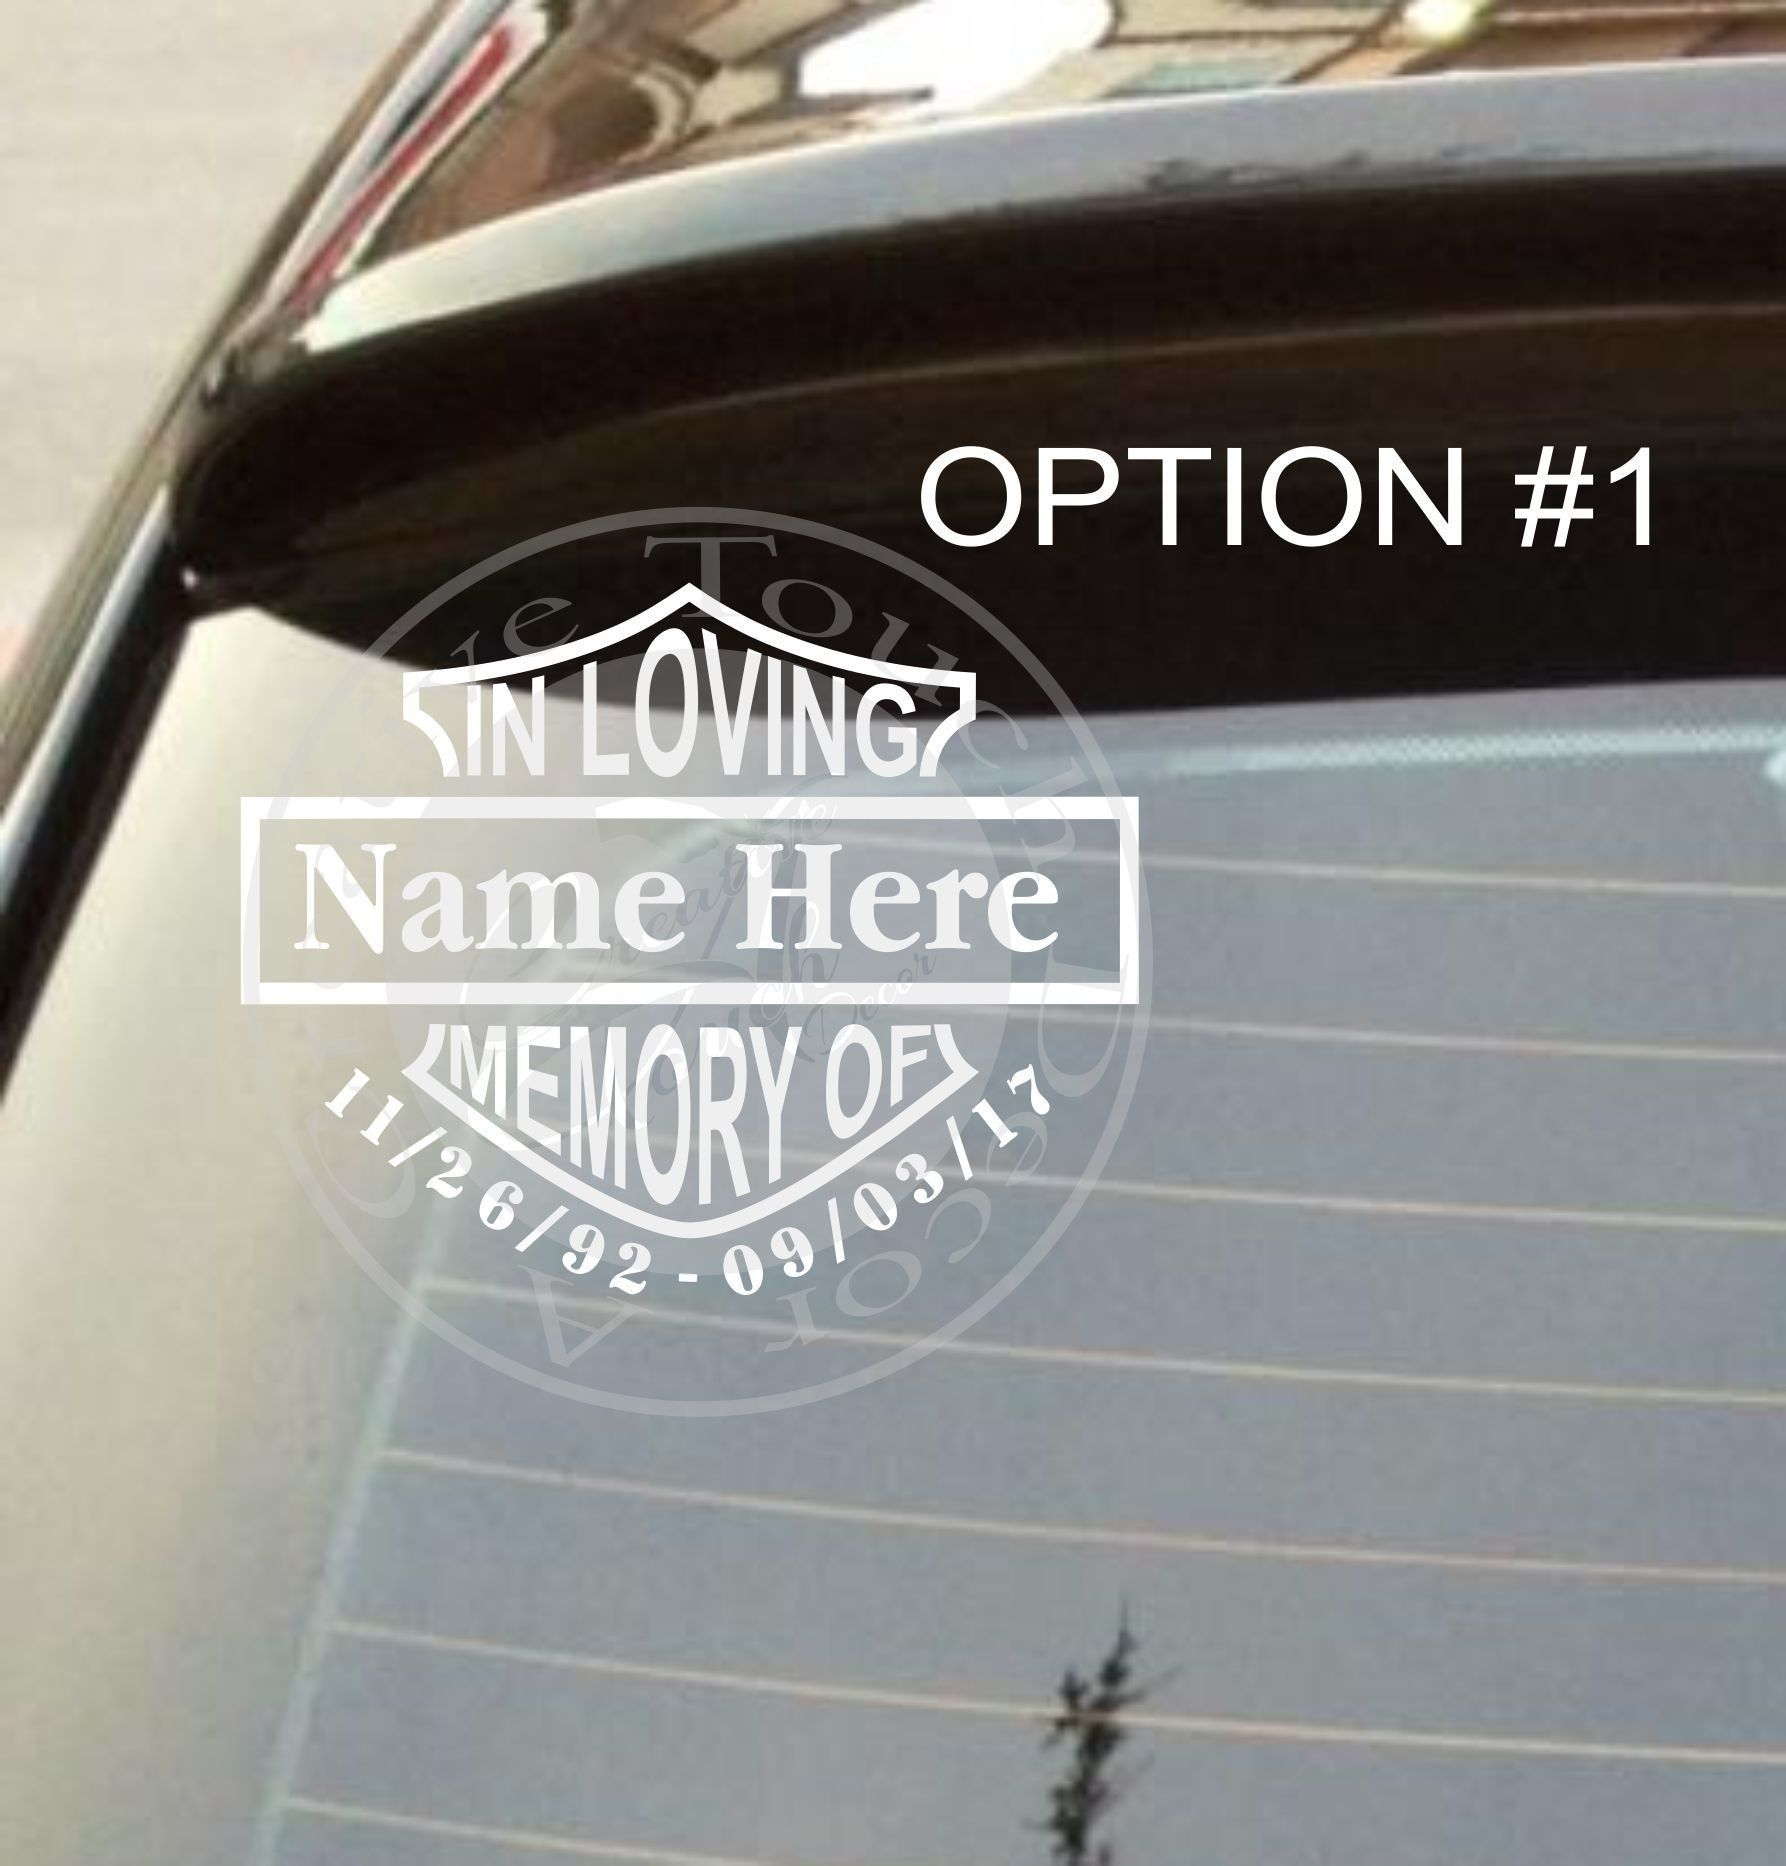 Personalized In Loving Memory Harley Davidson 2 Car Decal With Name And Dates By Acreativetouchdecor On Etsy Vinyl For Cars Car Decals Car Decals Vinyl